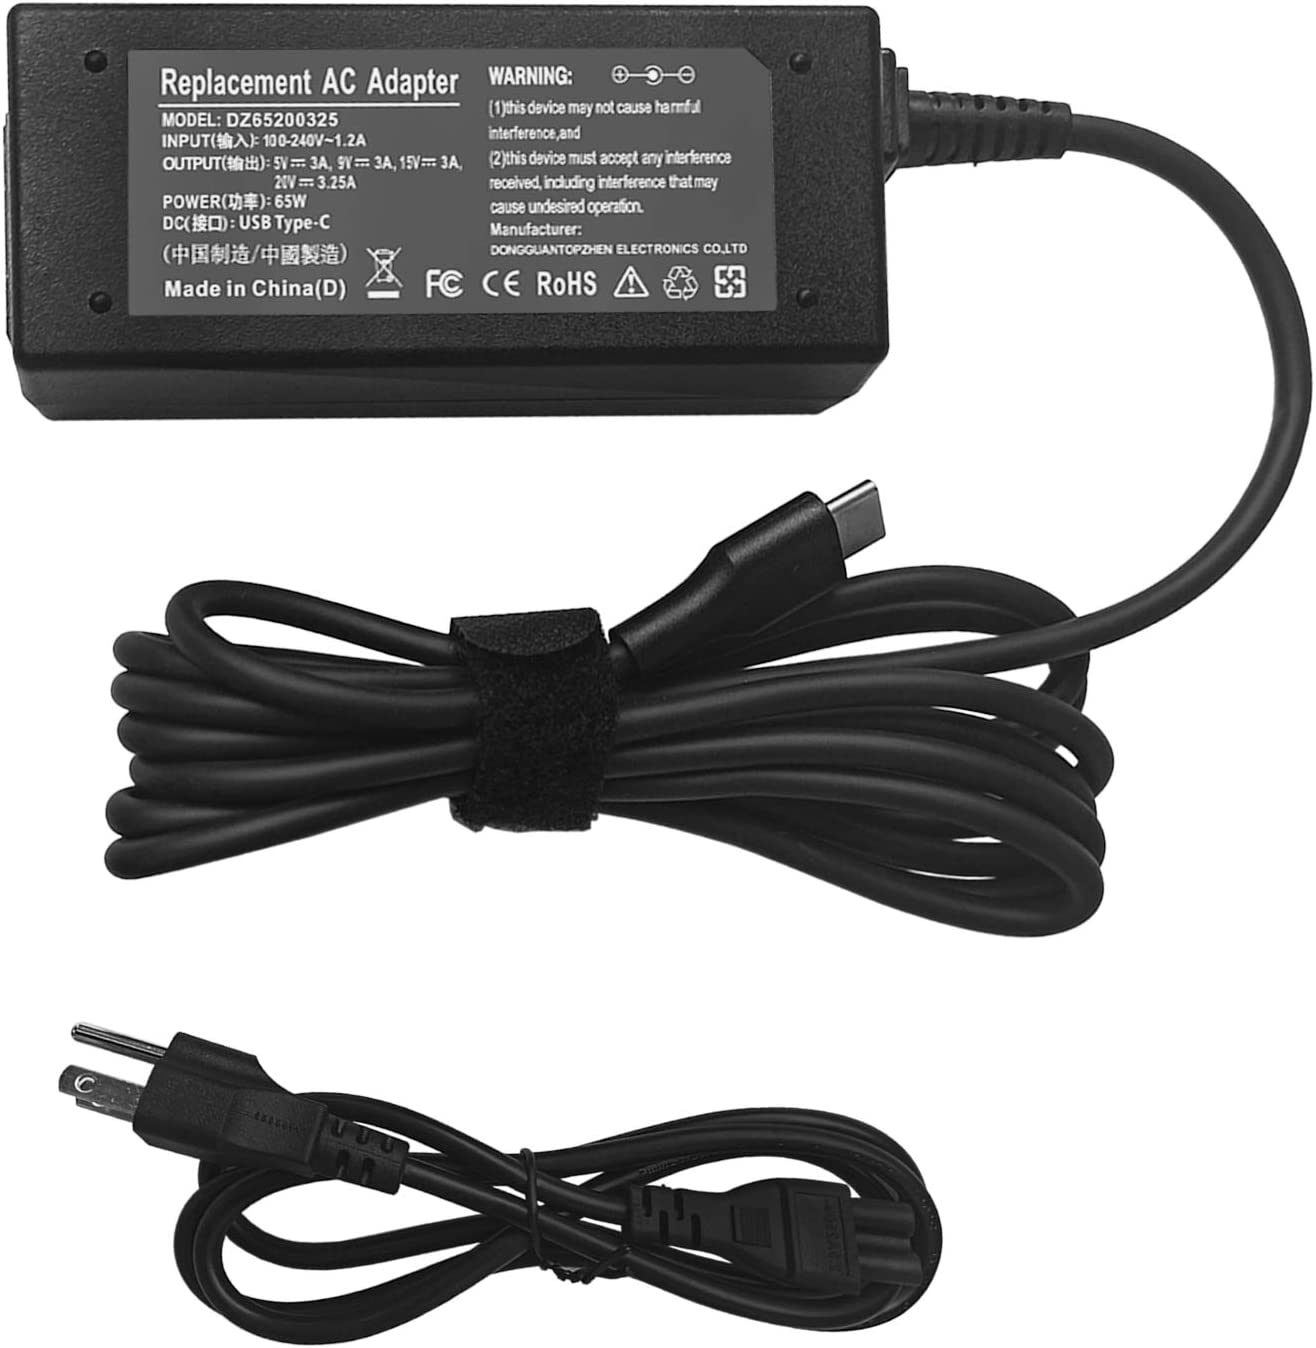 65W Type- C Laptop Charger Compatible with HP/Dell/Lenovo Chromebook C330 S330 100e 300e 500e Yoga C930 C940 720 ThinkPad T480 T490 T570 T580 with USB C Charging Cable